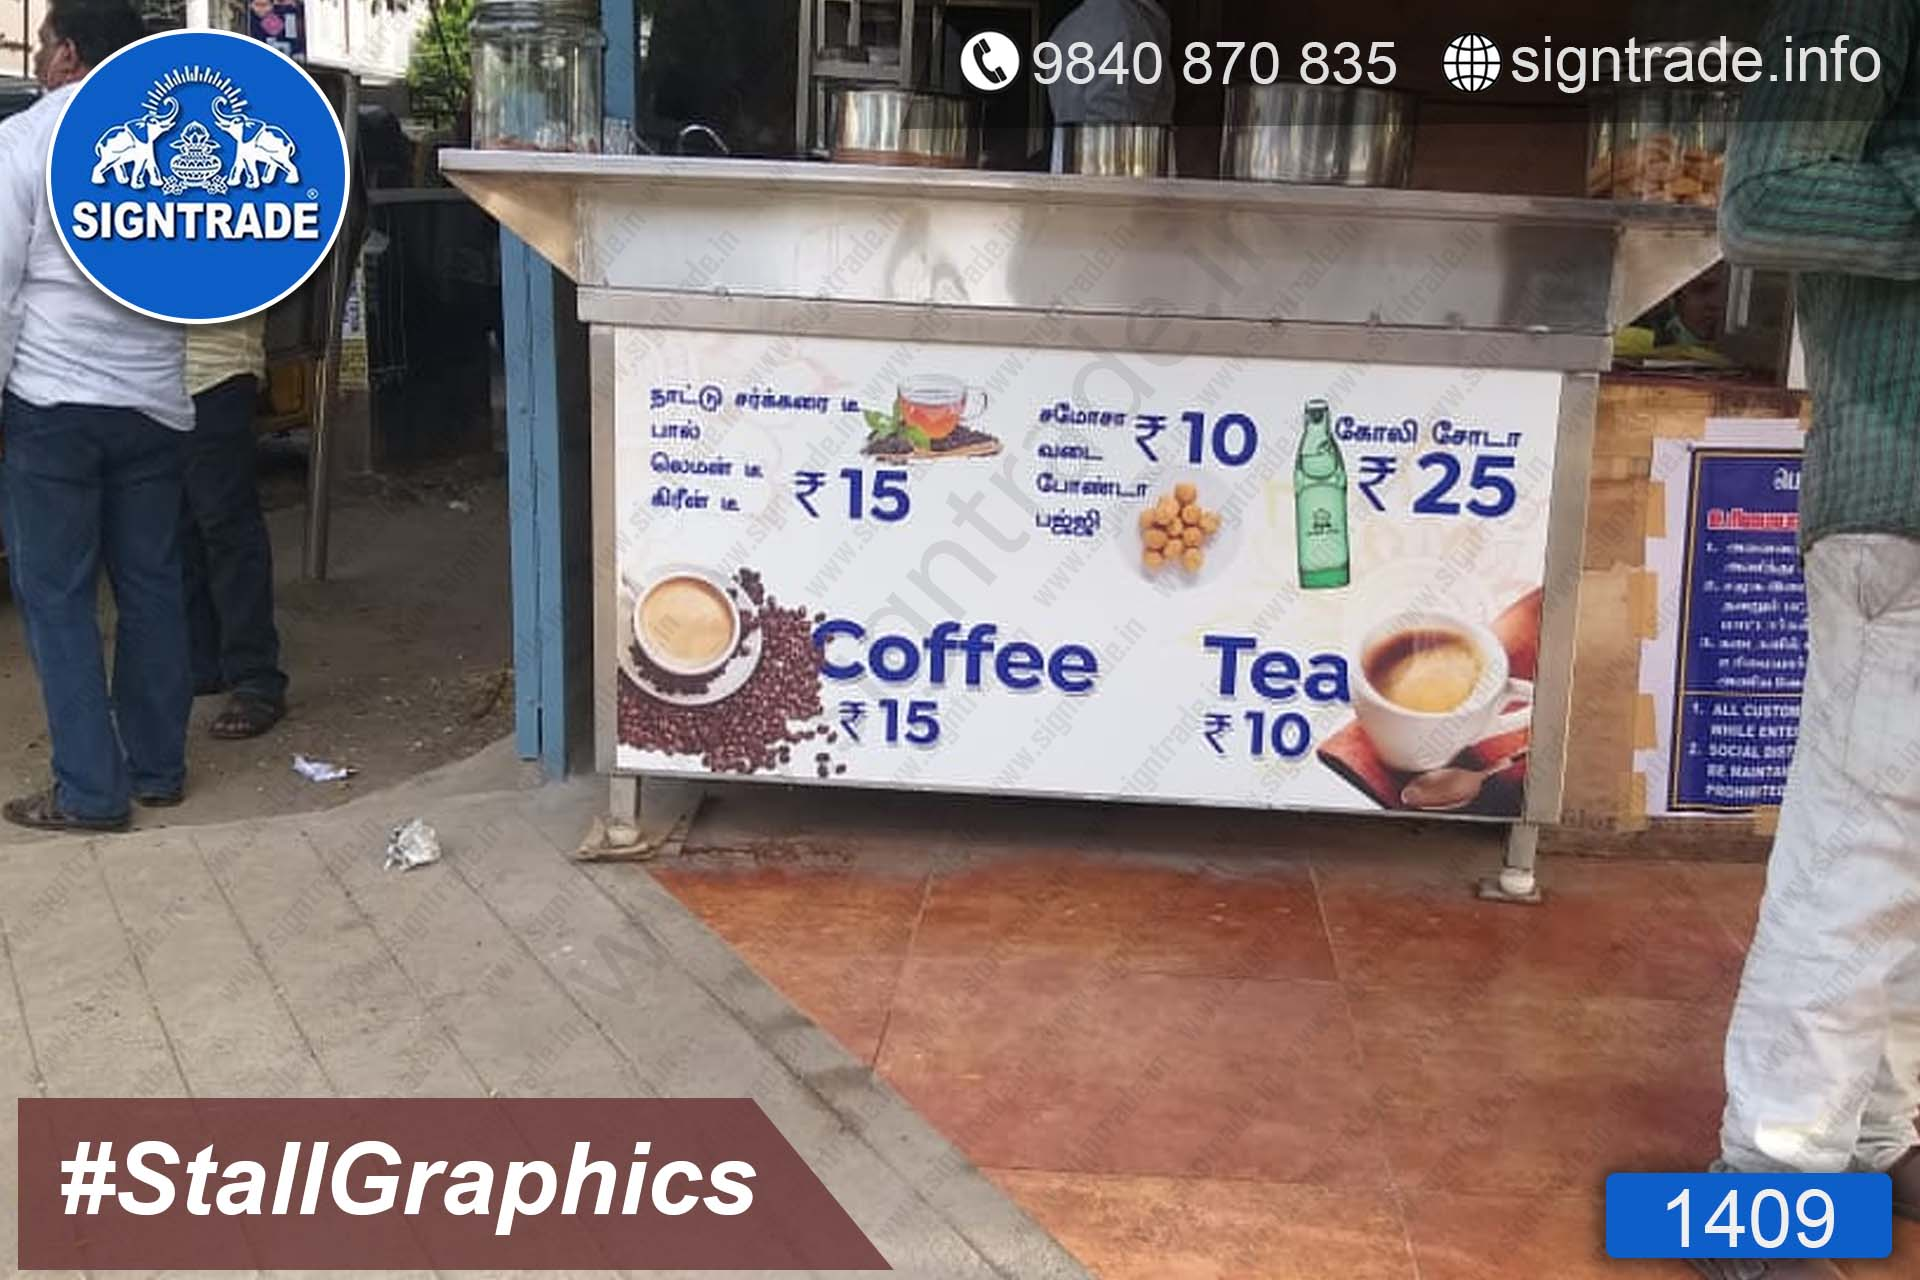 Tea Stall - 1409, Vinyl Graphics, Wall Graphics, Wall Wrapping, wall stickers, wall Wraps, Wall Branding, GlassDoor Branding, GlassDoor Graphics, GlassDoor Wraps, Wraps in Glass, Glass door branding, Glass wall branding